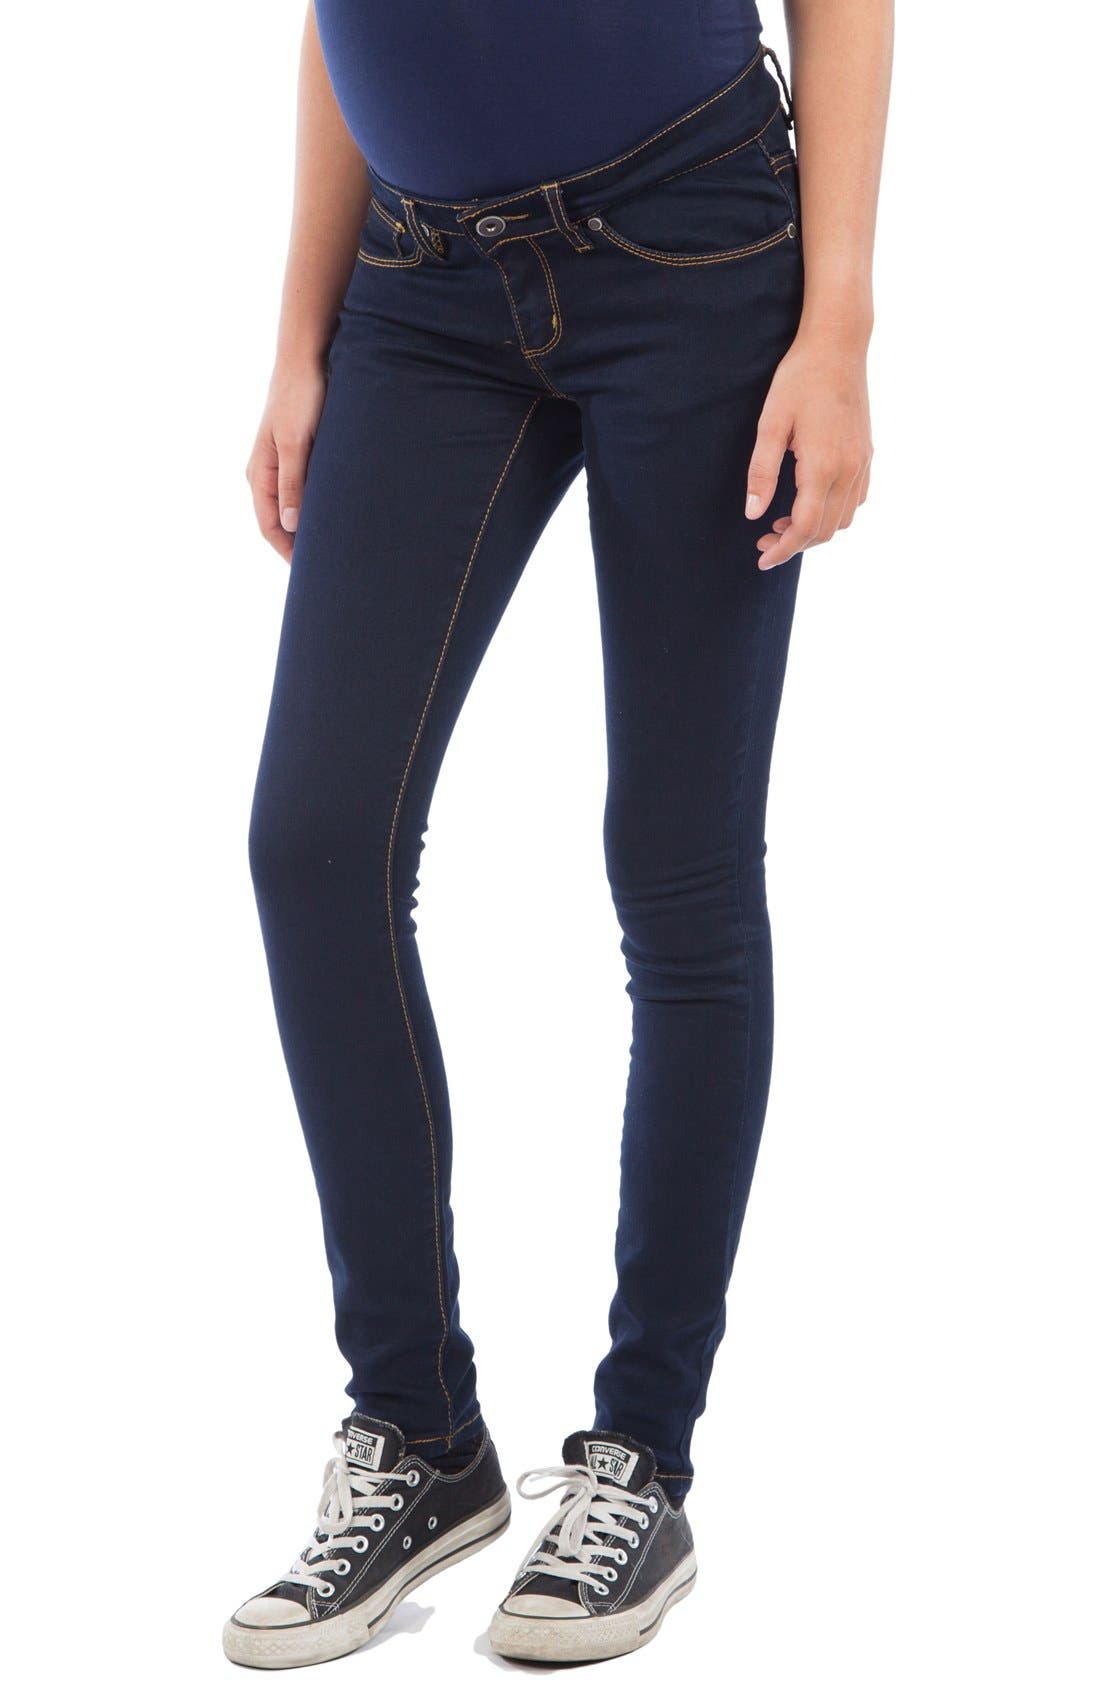 Alternate Image 1 Selected - Modern Eternity Skinny Maternity Jeans